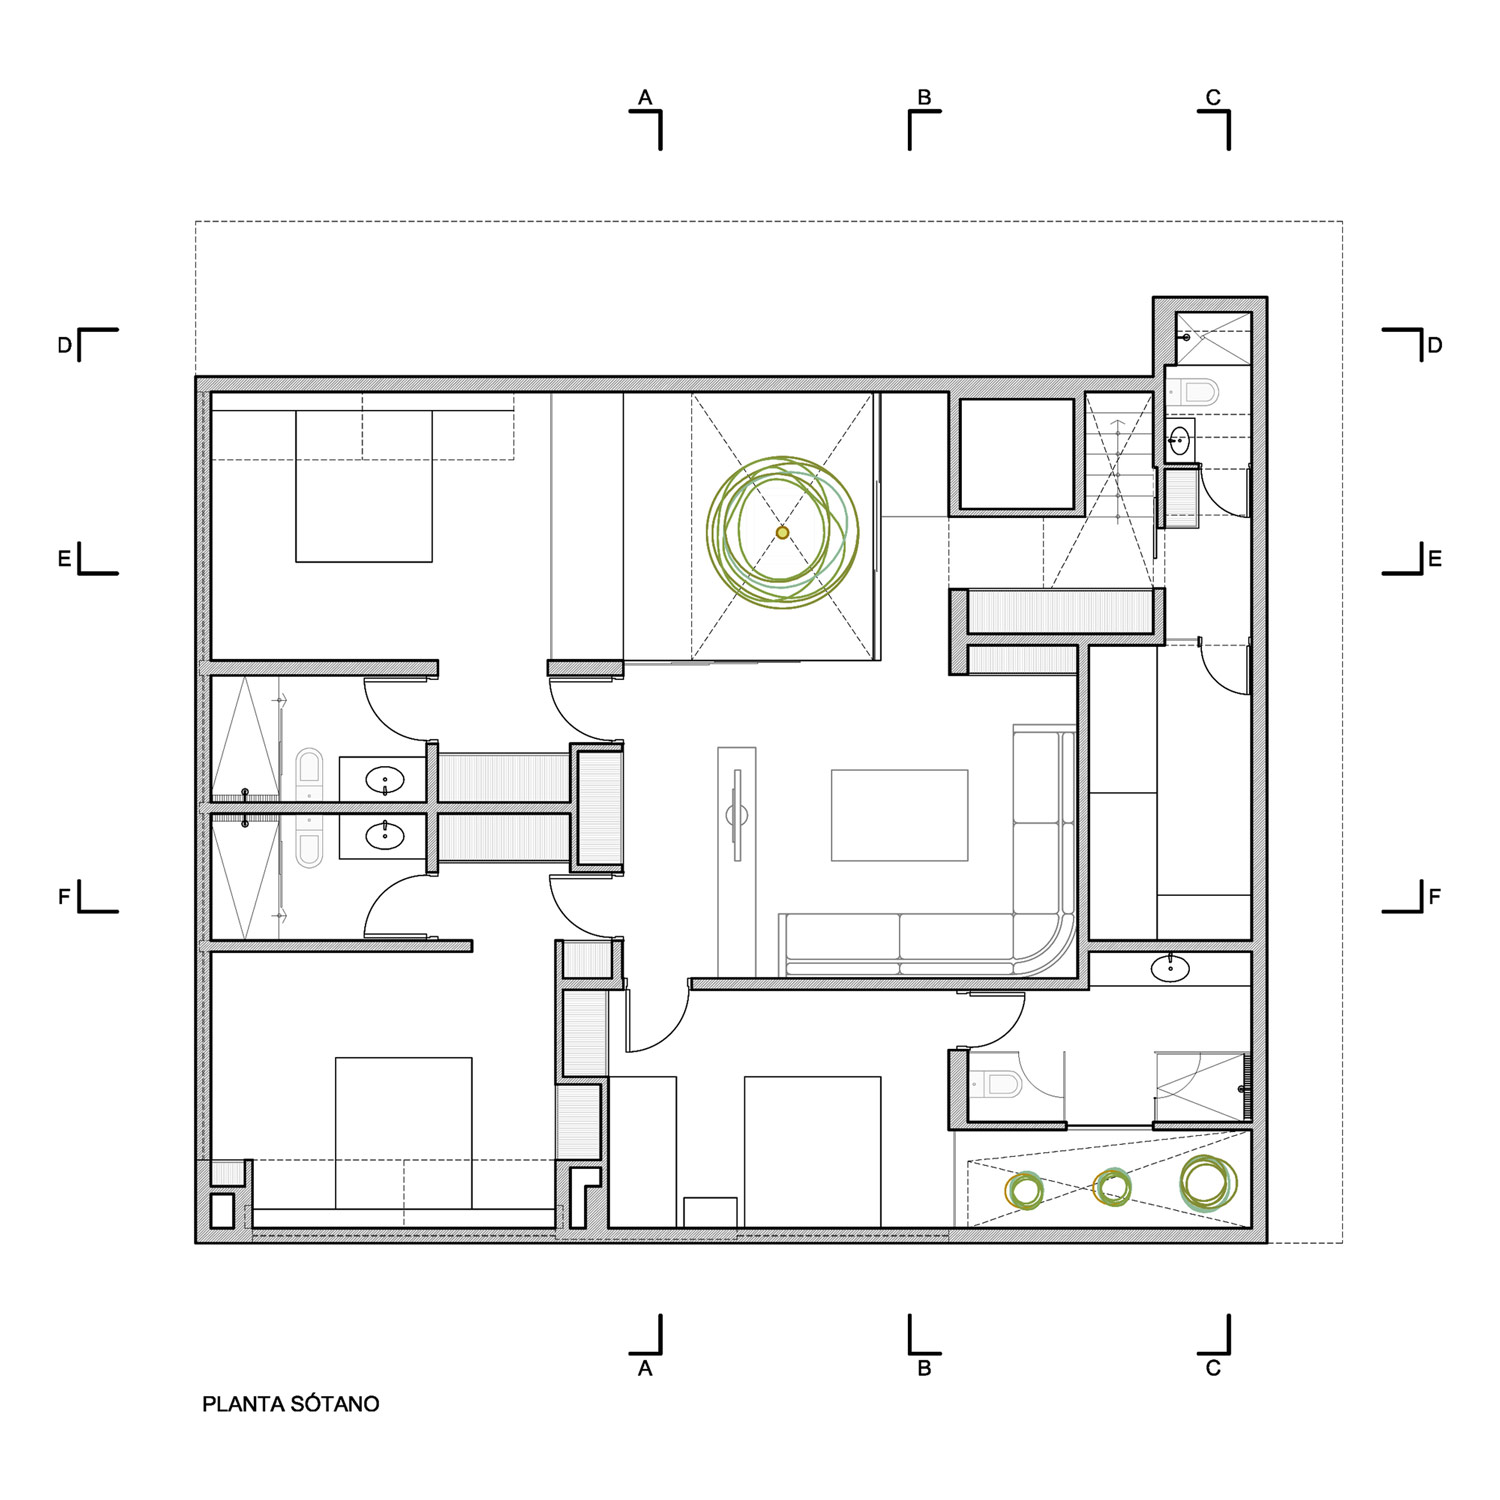 Basement floor plan luxury modern home in lima peru for Modern house plans with basement